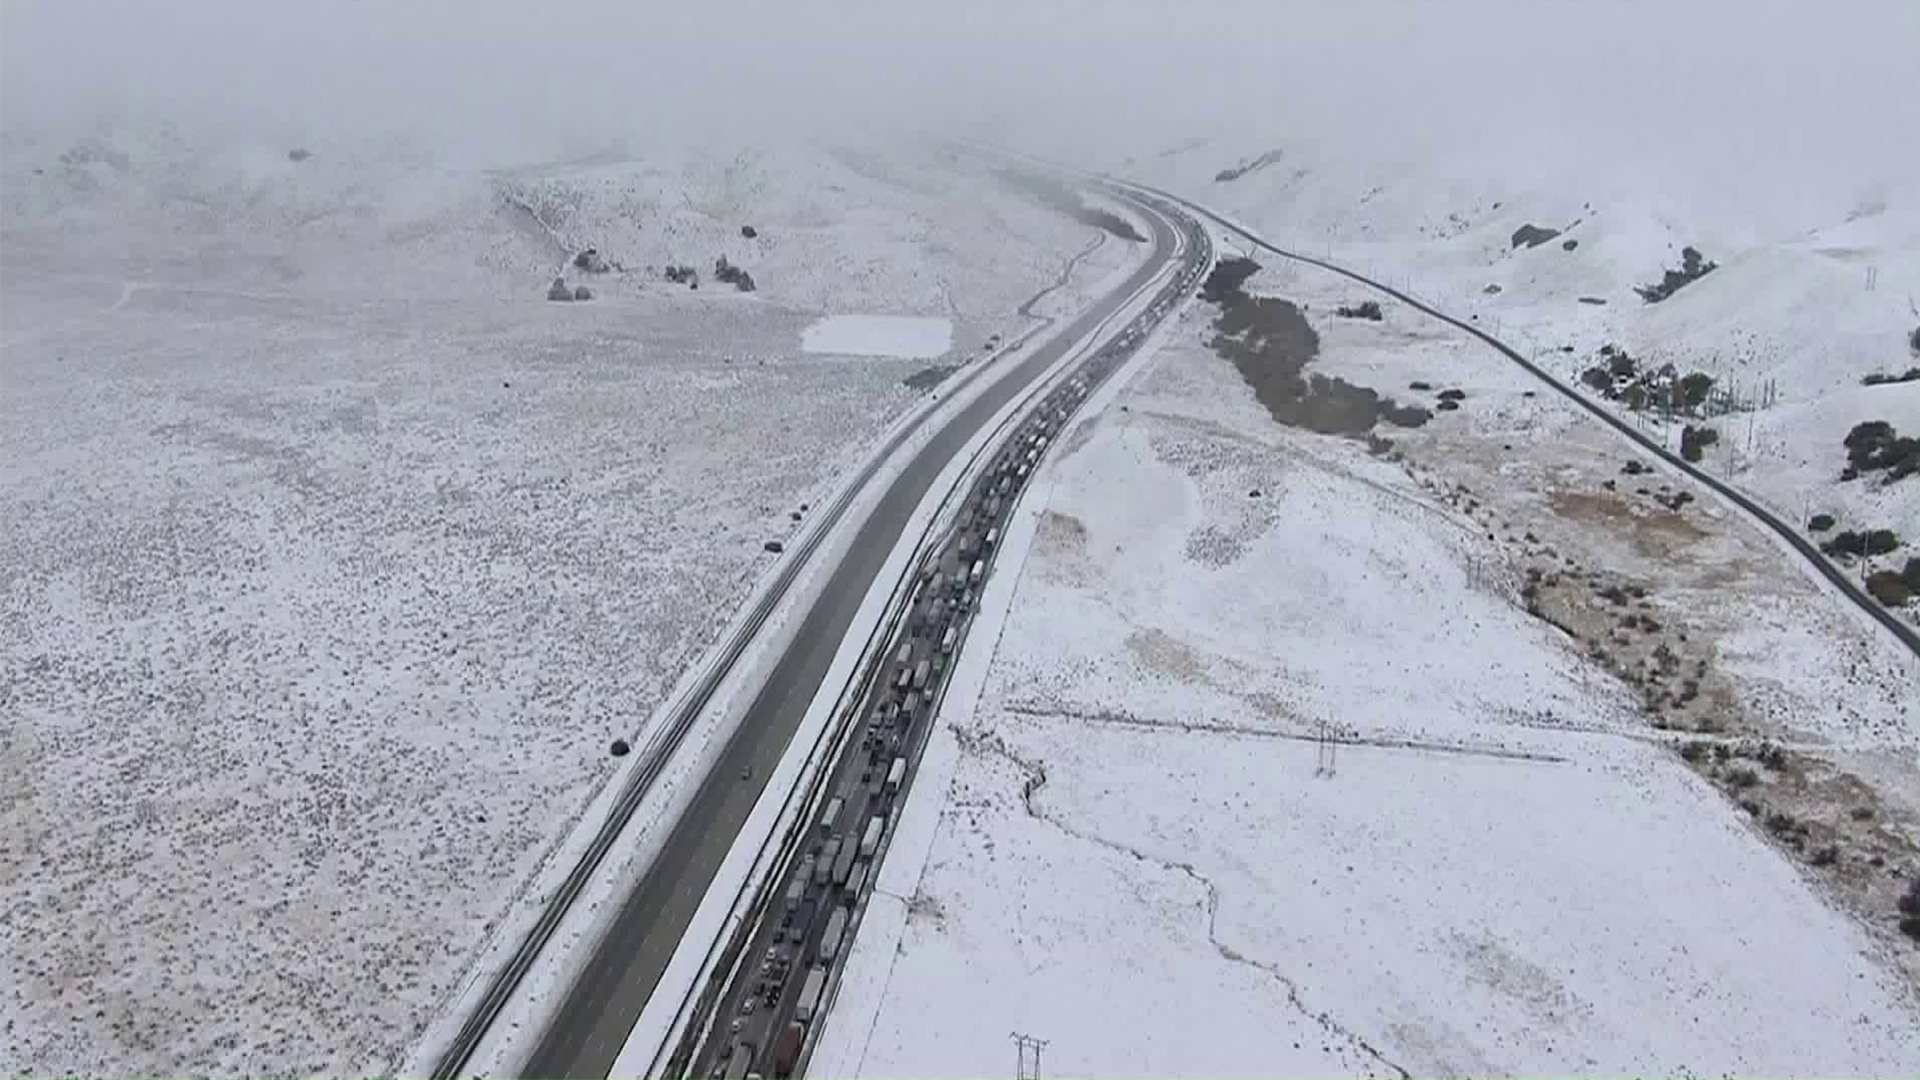 Traffic is backed up as the 5 Freeway is closed in the Grapevine area on Dec. 6. 2018. (Credit: KTLA)